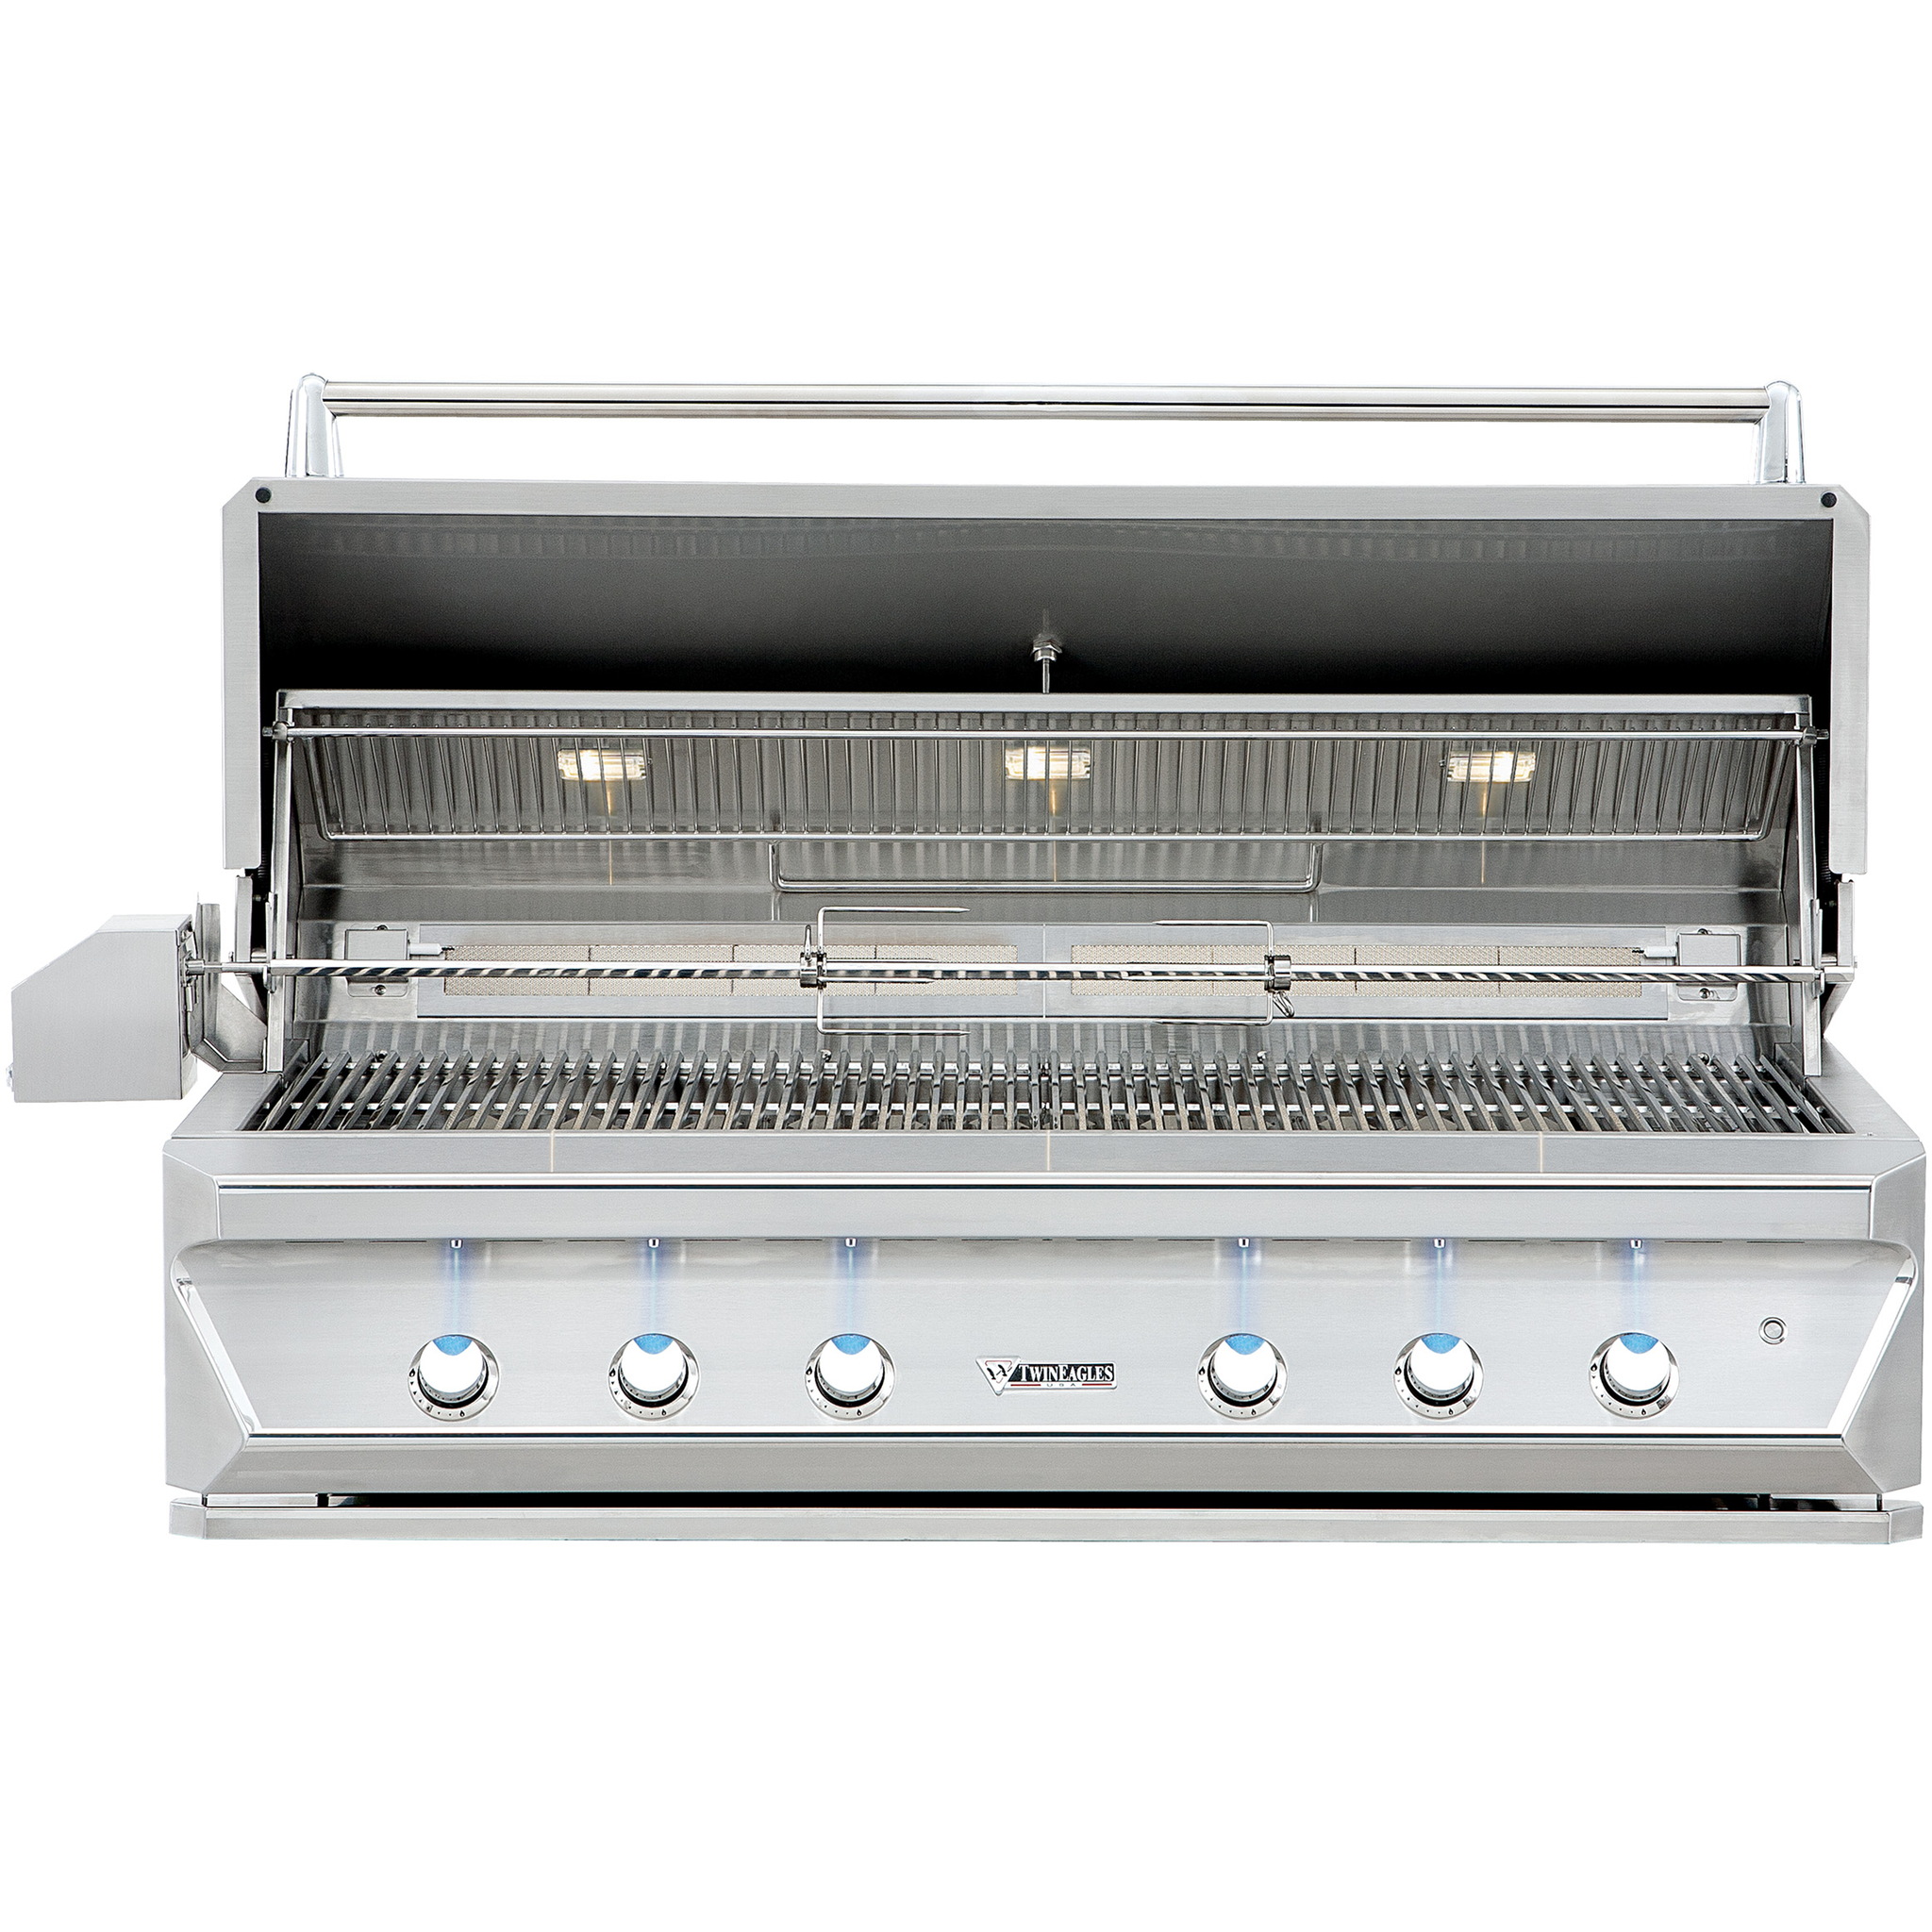 "54"" Twin Eagles Built-In Gas Grill w/ Infrared Rotisserie & Sear Zone, Natural Gas"